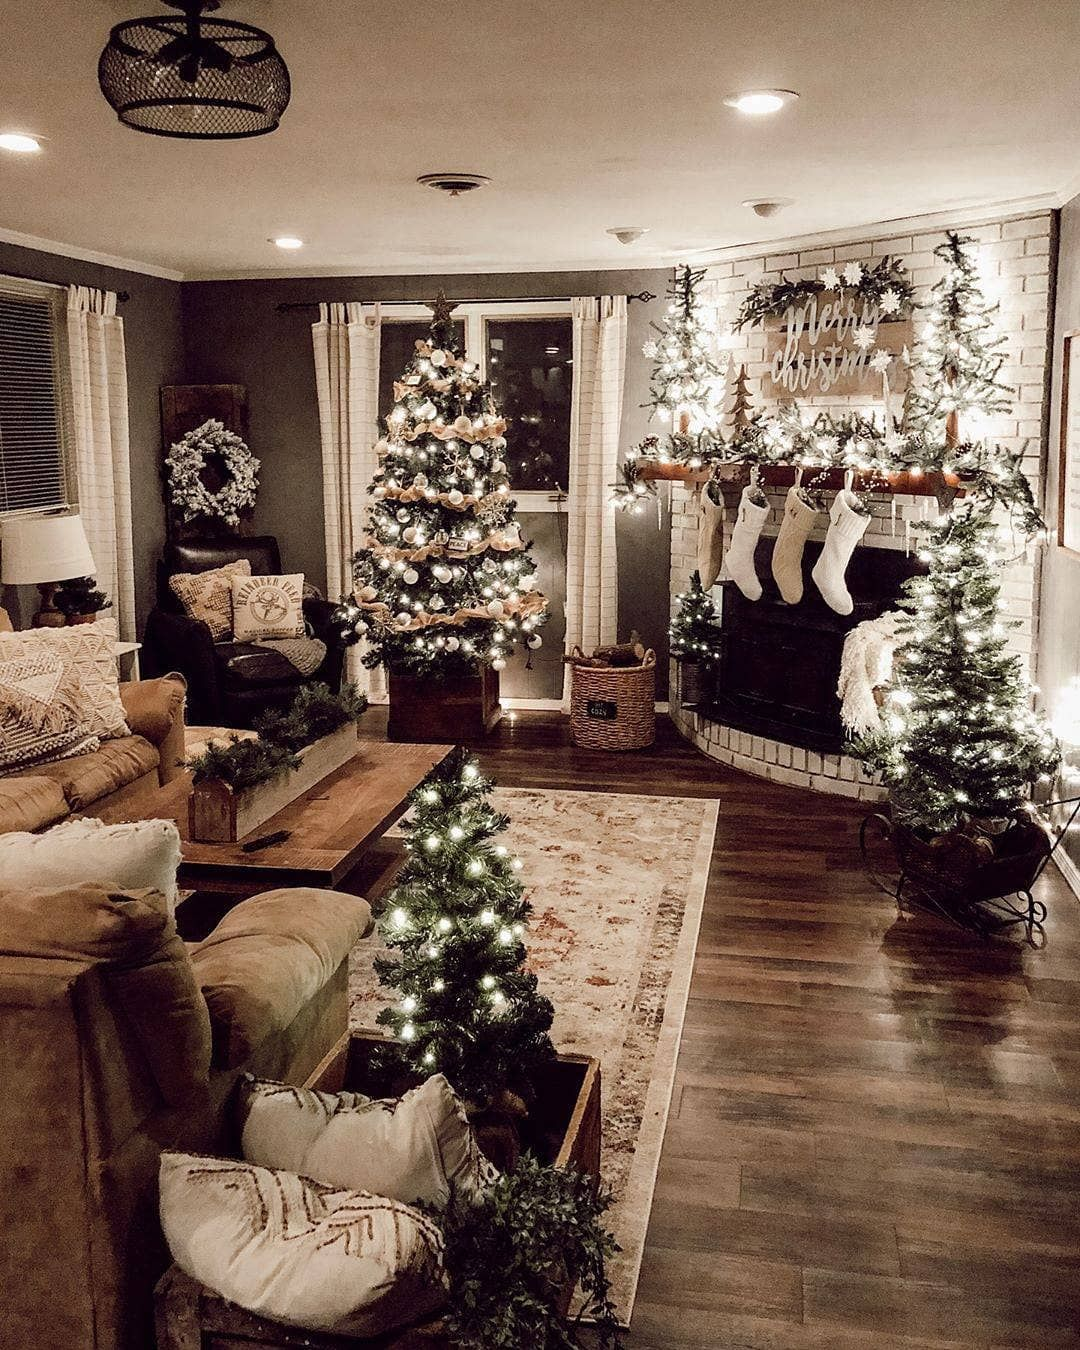 Cozi Homes On Instagram This Family Room All Ready For Christmas Has Really Given Us The Holiday Spirit Christmas Room Indoor Christmas Rustic Christmas